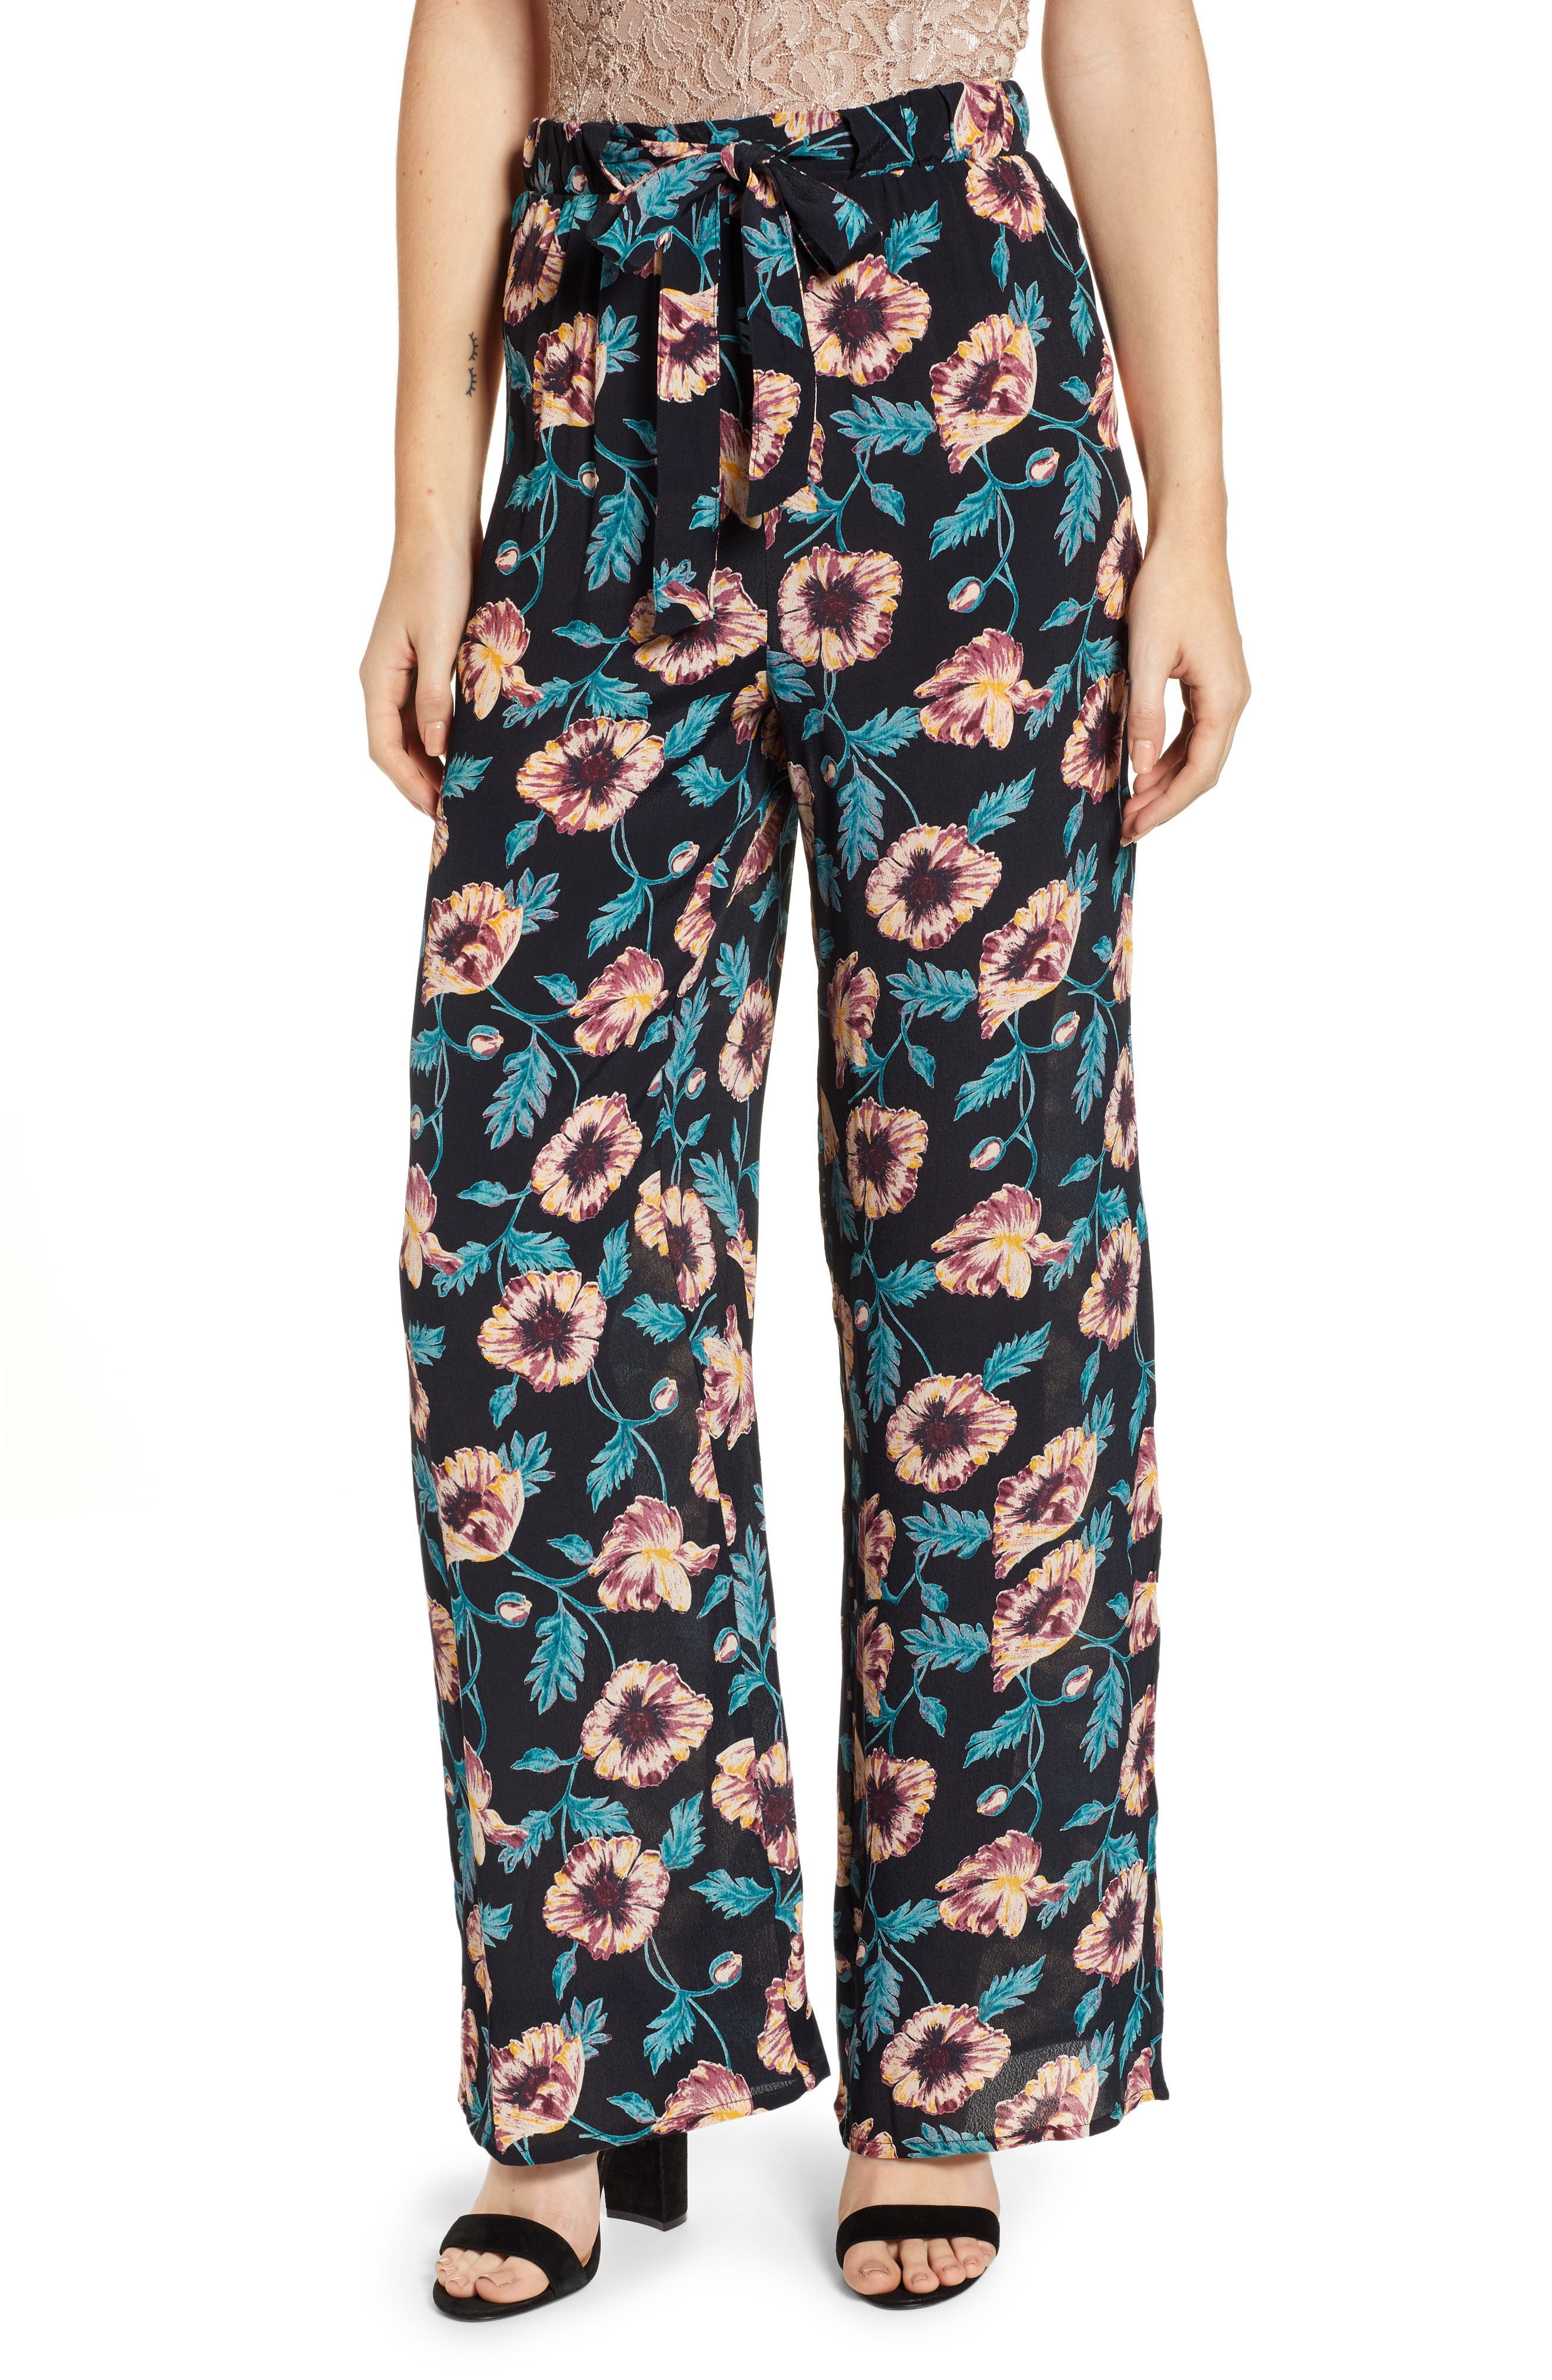 BAND OF GYPSIES Ravenel Print Pants in Black/ Crimson